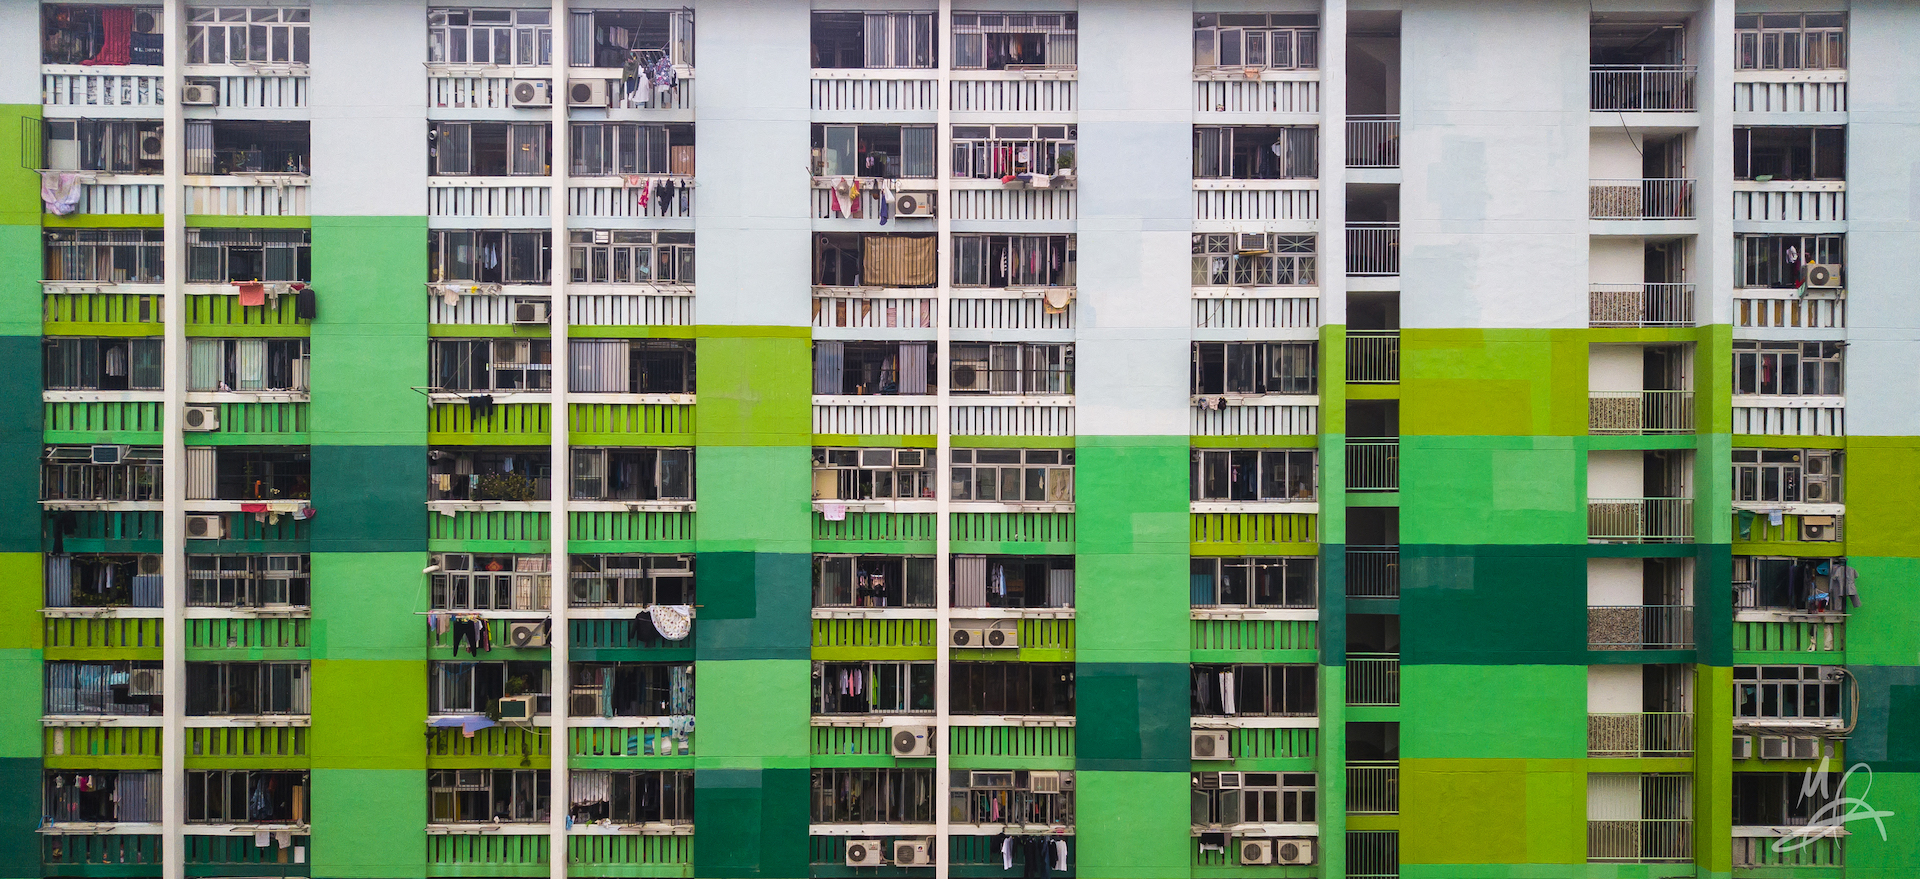 Hong Kong public housing estate - landscape 1/5